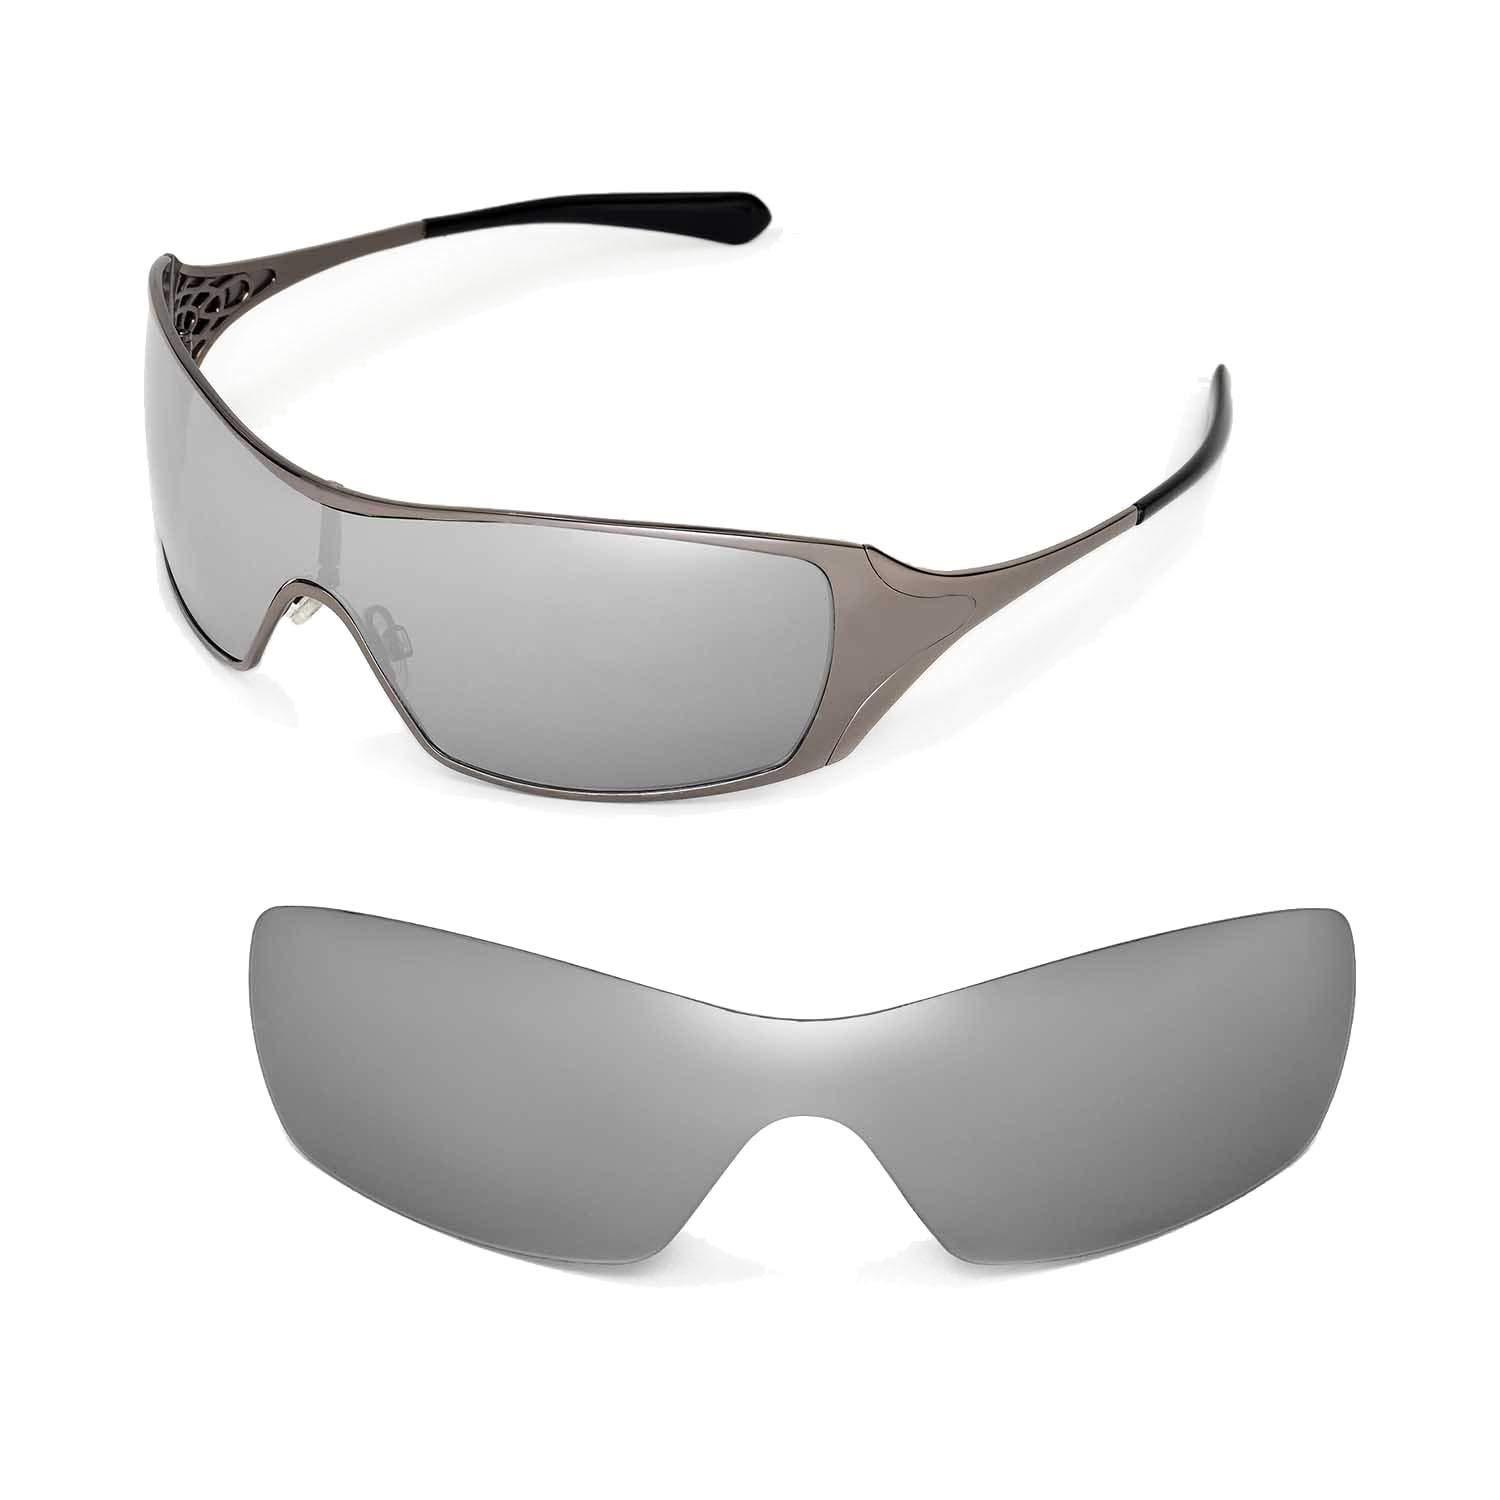 6a9f32c7eb Replacement Lenses for Oakley Dart Sunglasses 7 Options Available